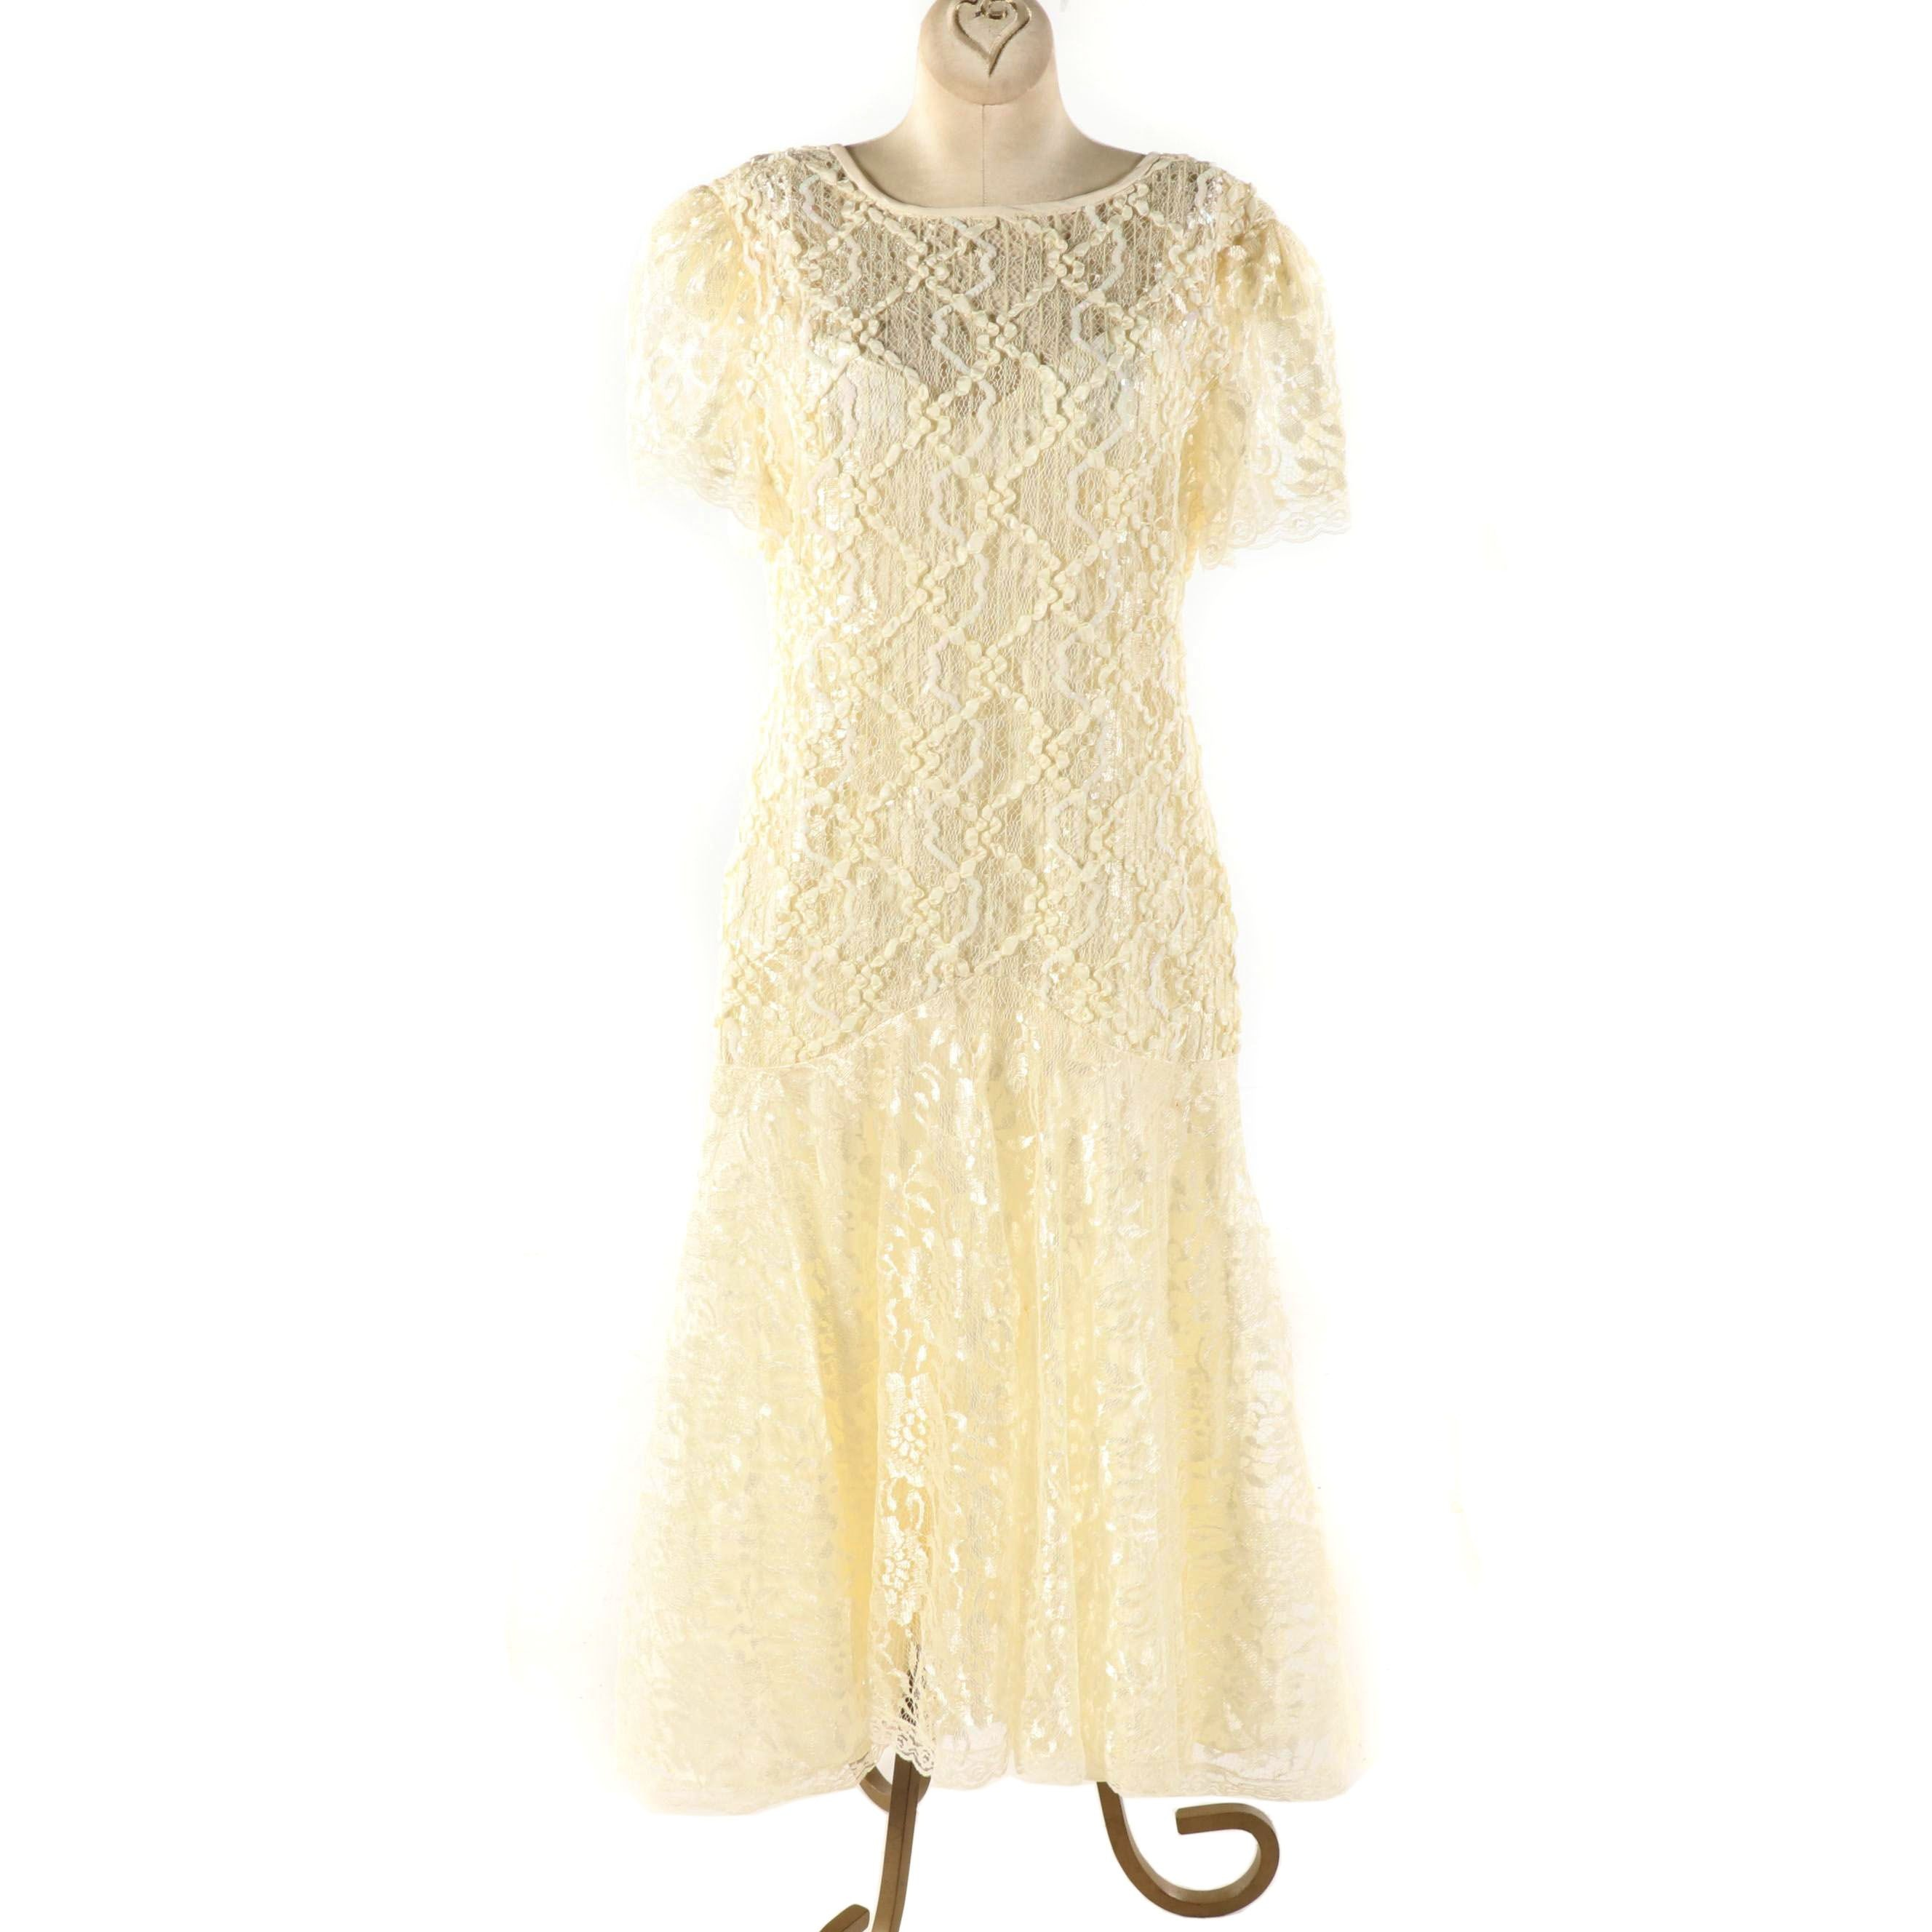 Shuet Young for HW Collections Cream Lace Dress with Illusion Neckline